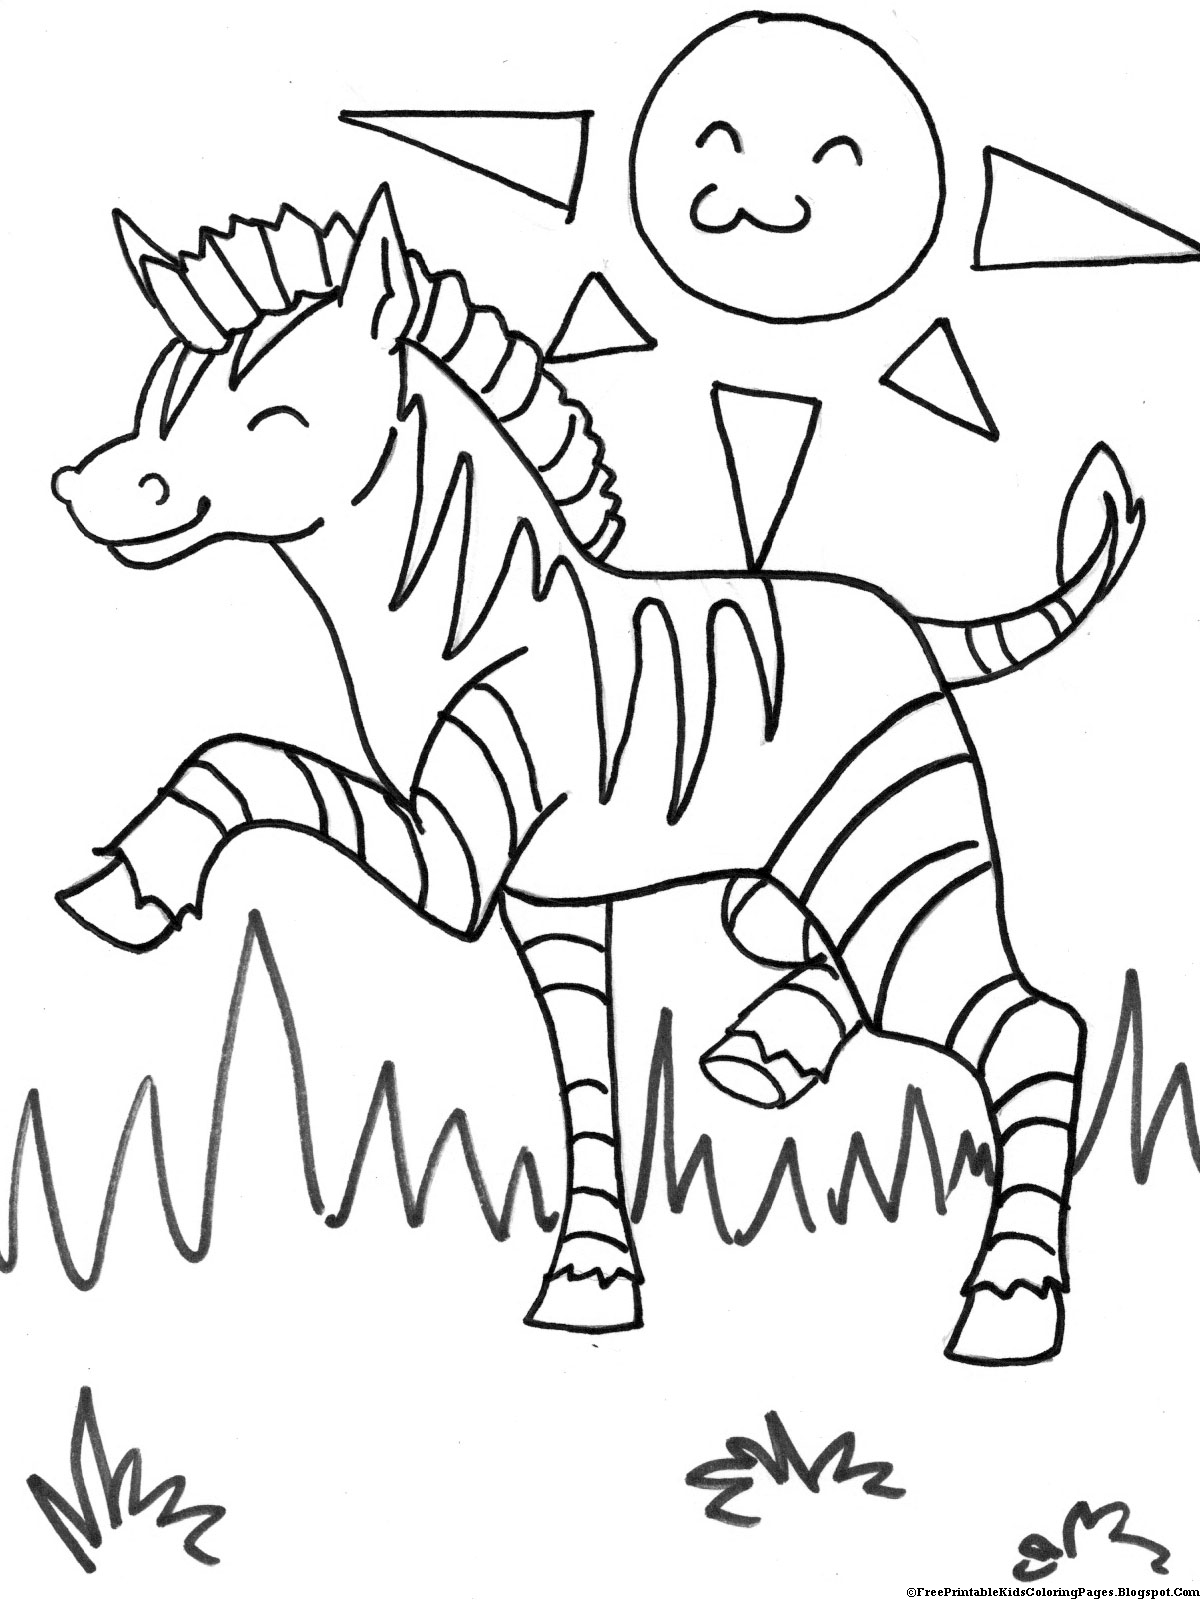 zoo animals coloring pictures zoo animal coloring pages elegant get this preschool zoo coloring pictures animals zoo